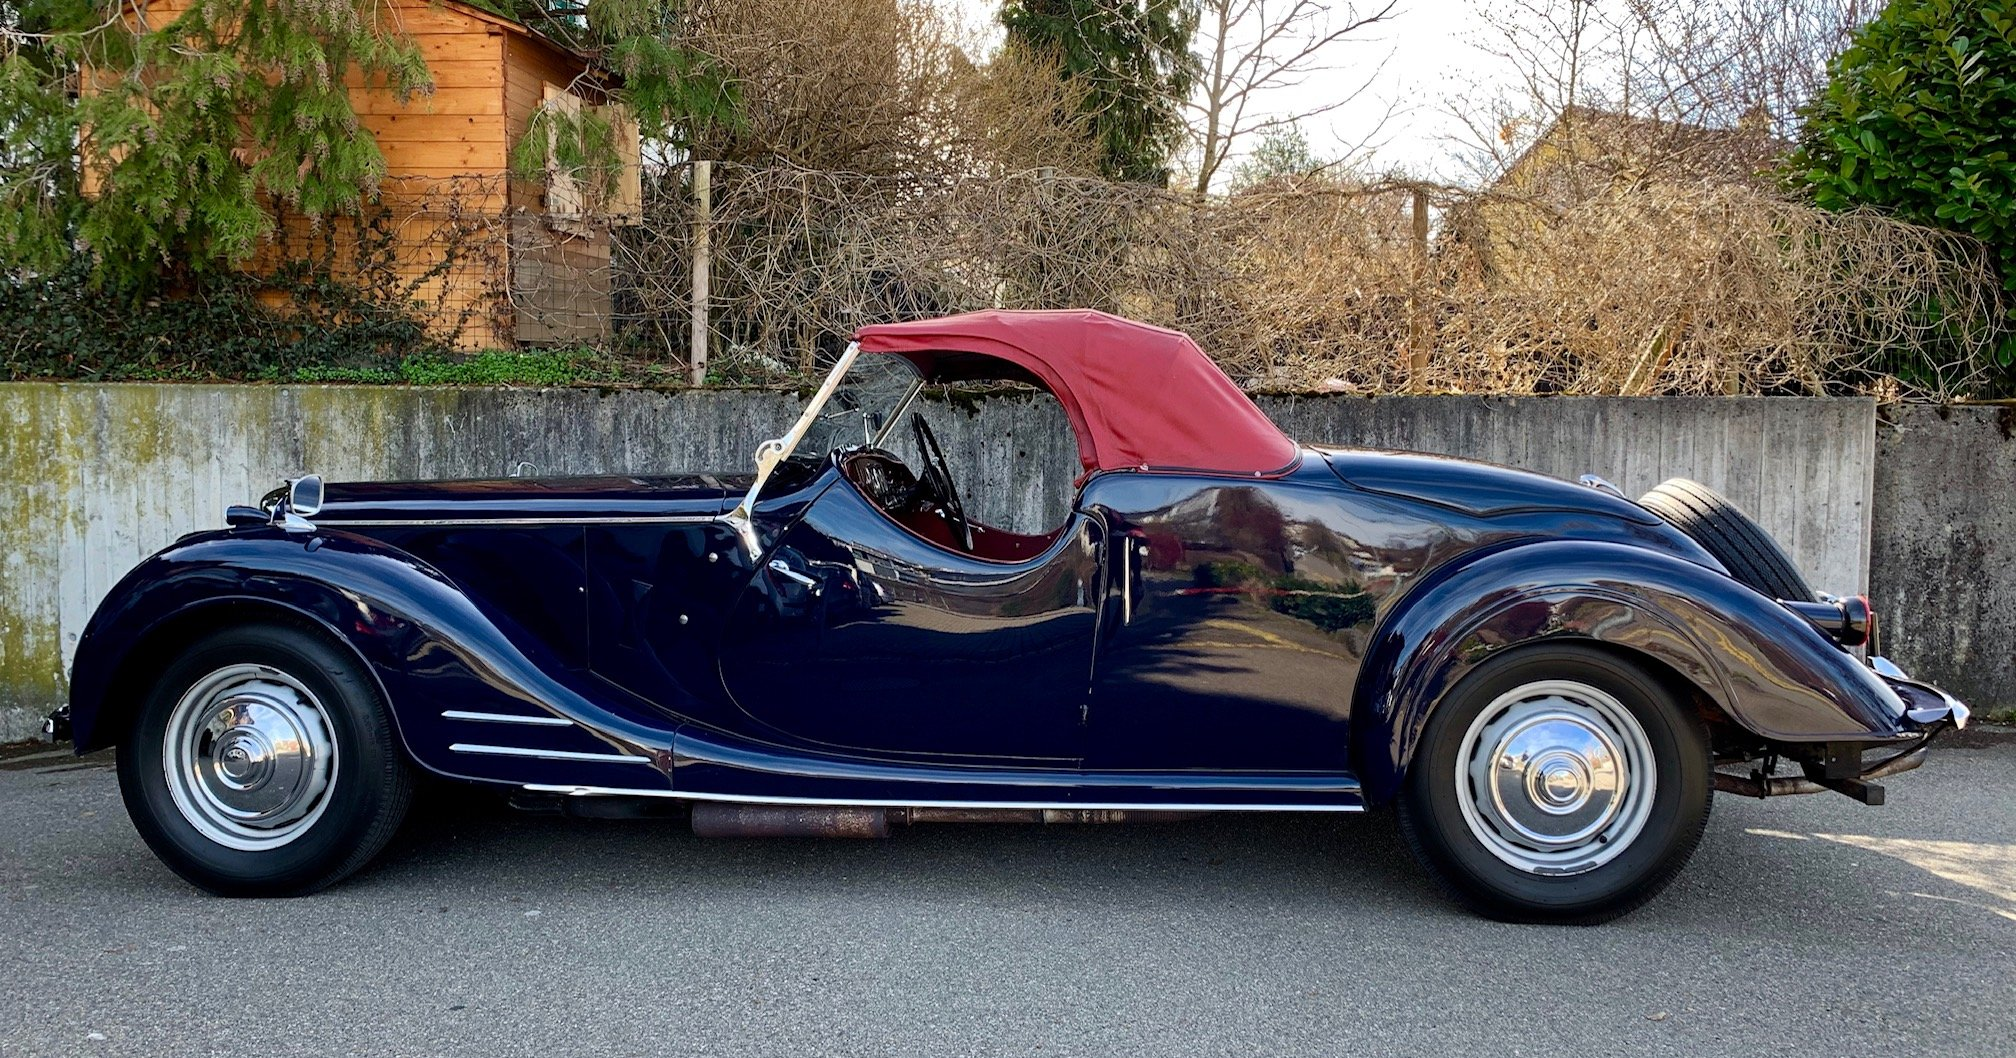 1949 2,5 RMC Roadster For Sale (picture 2 of 6)